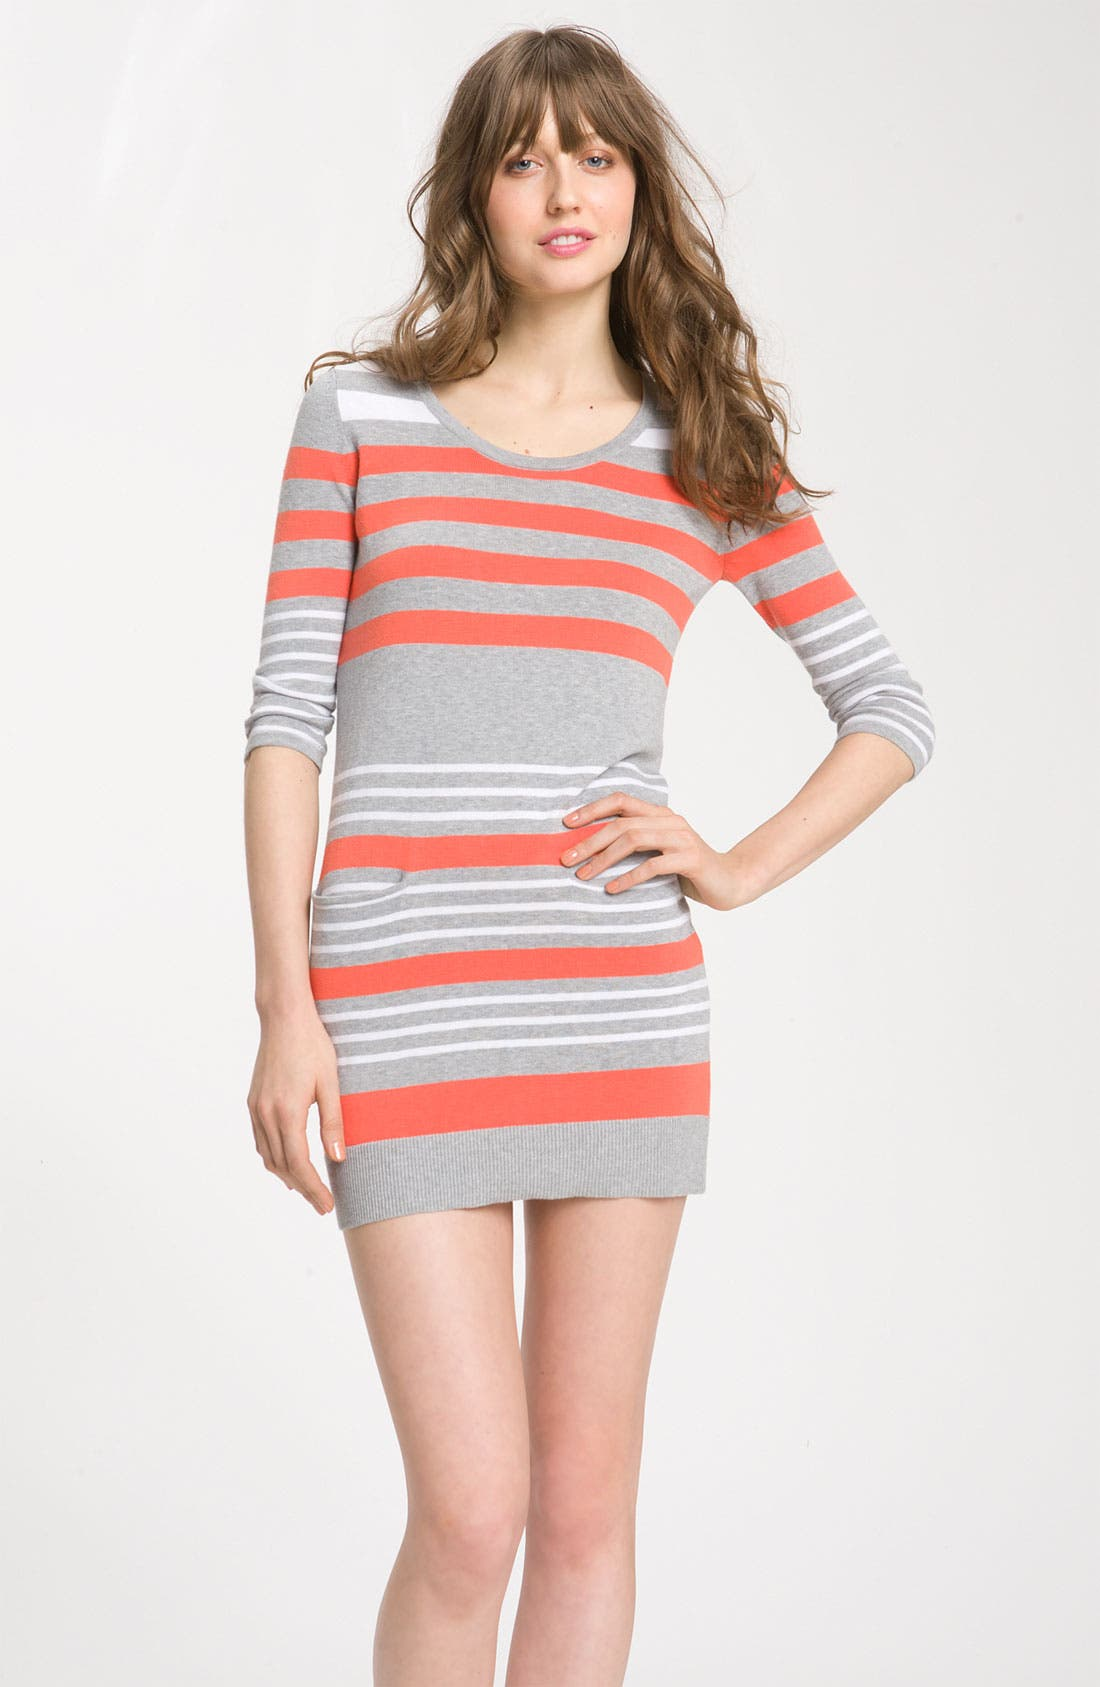 Alternate Image 1 Selected - C & C California Striped Cotton & Cashmere Sweater Dress